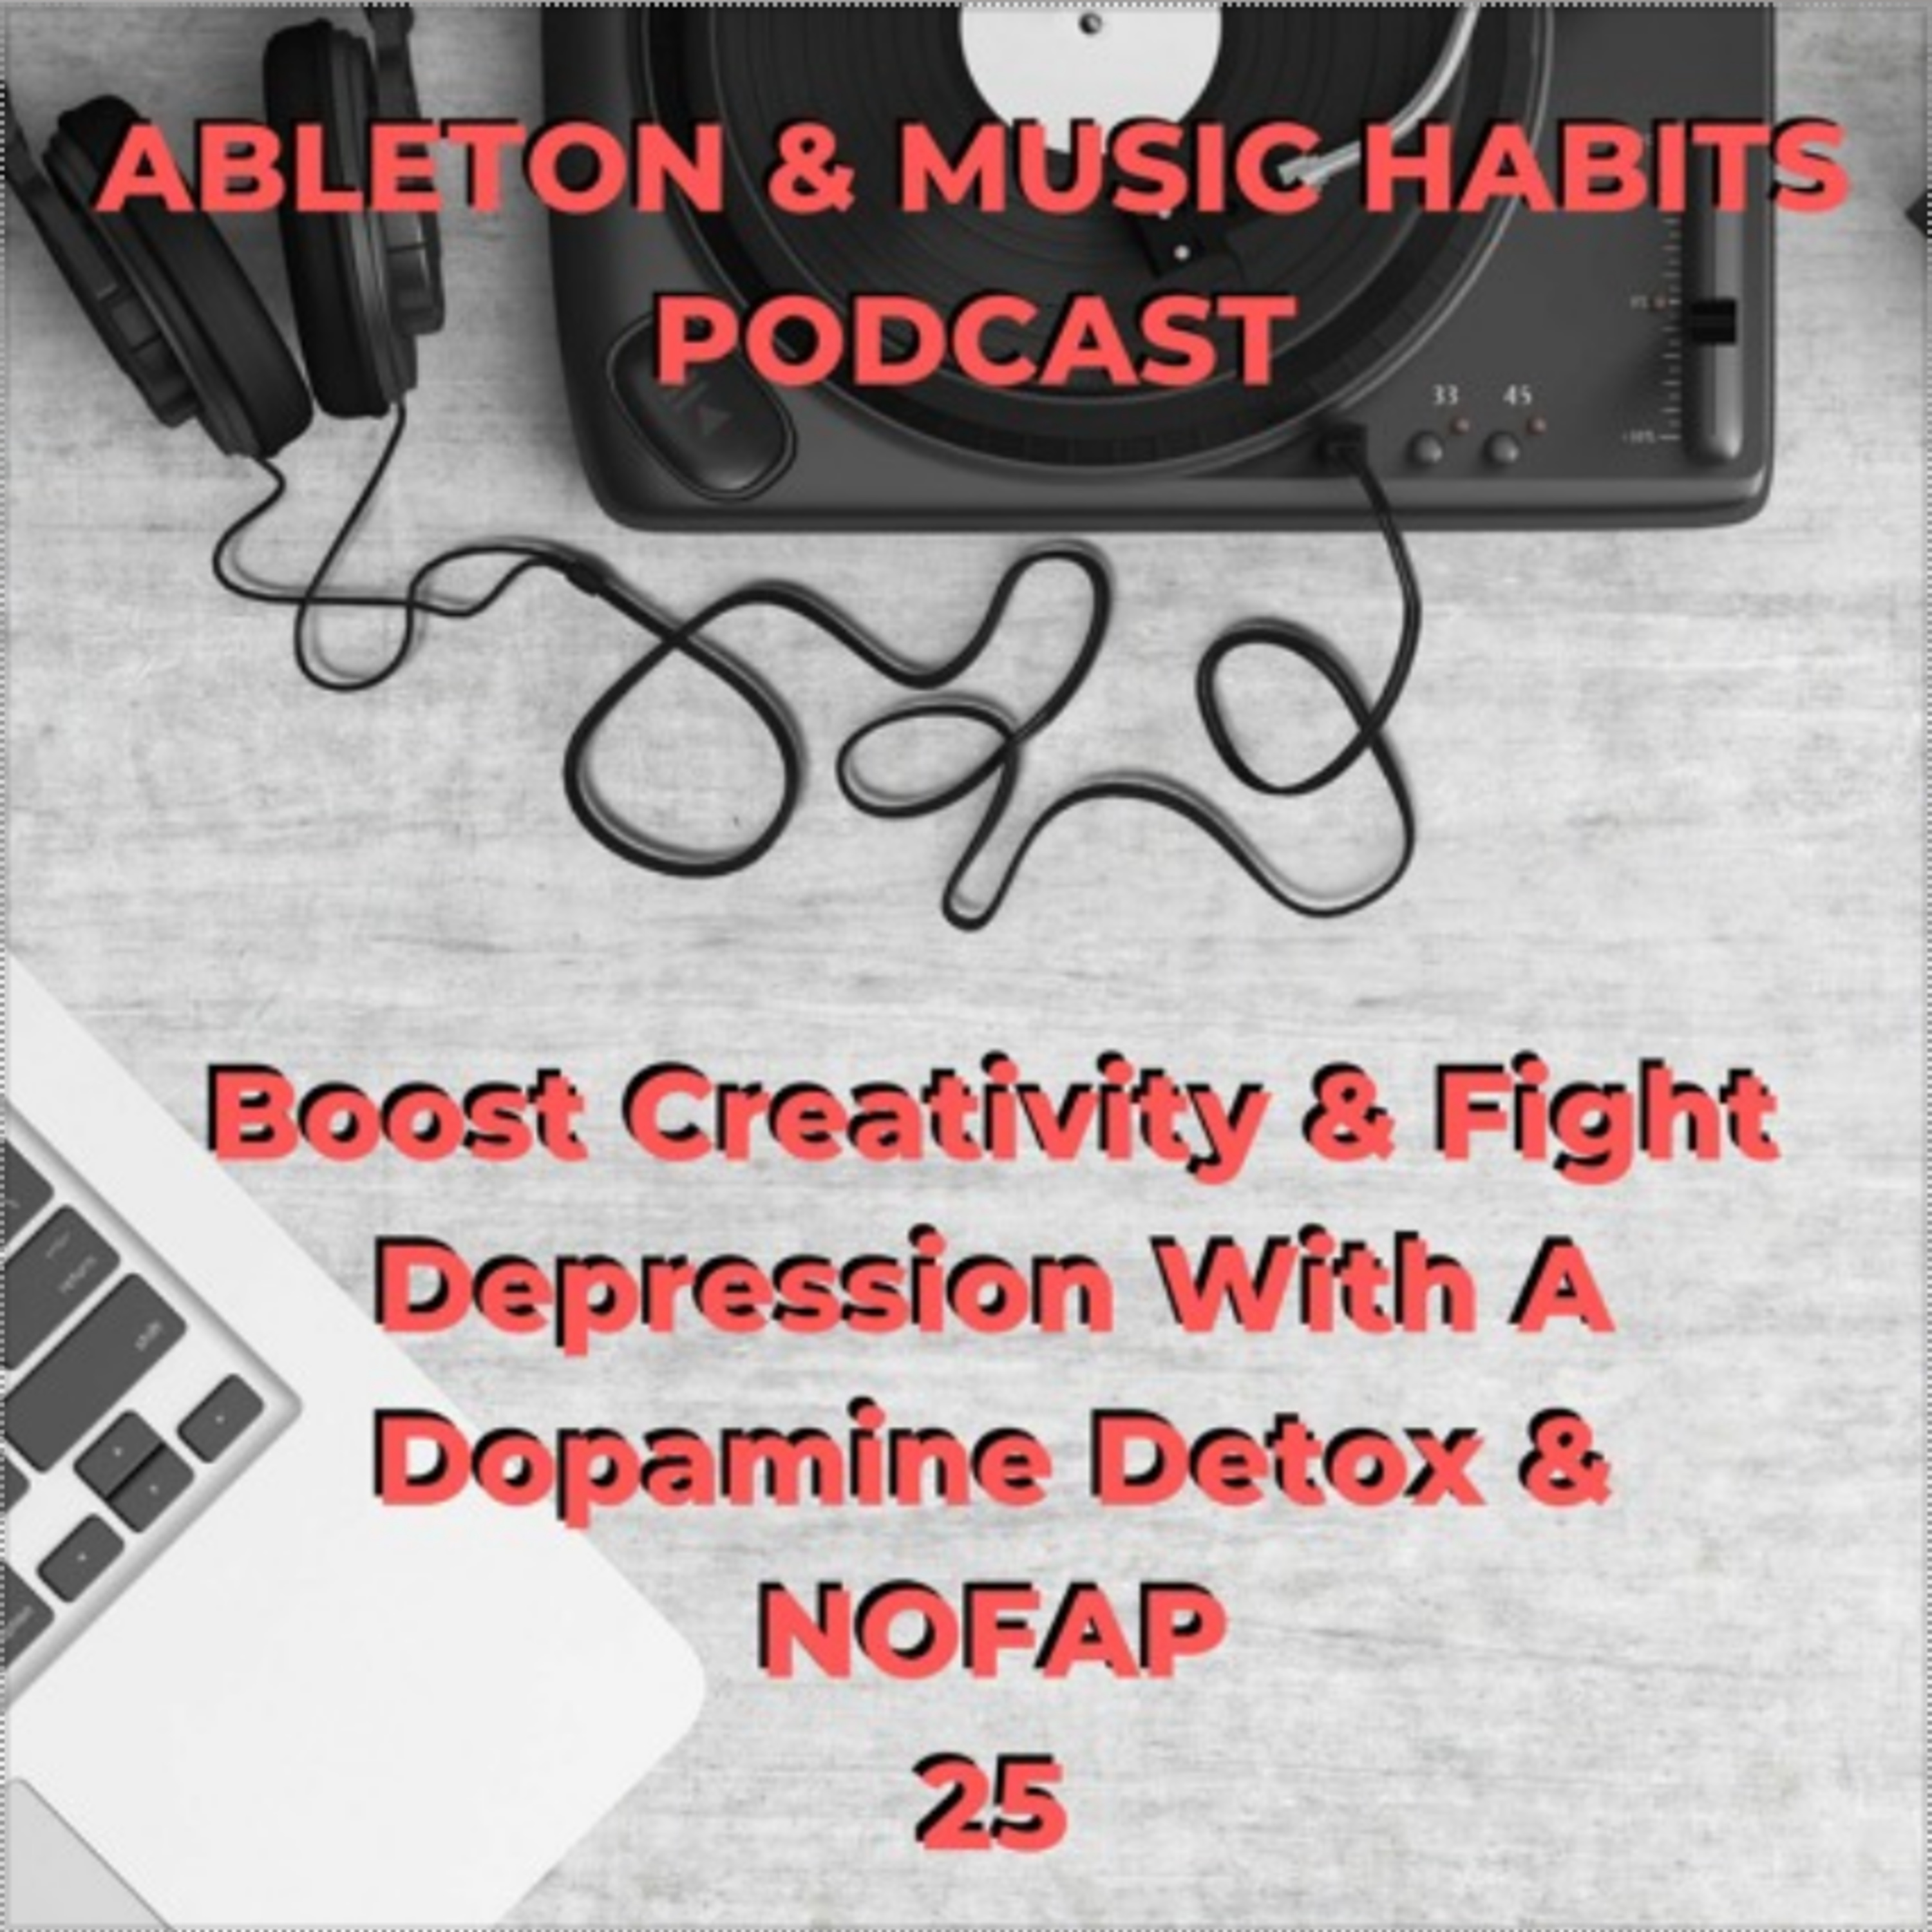 Ableton & Music Habits Podcast